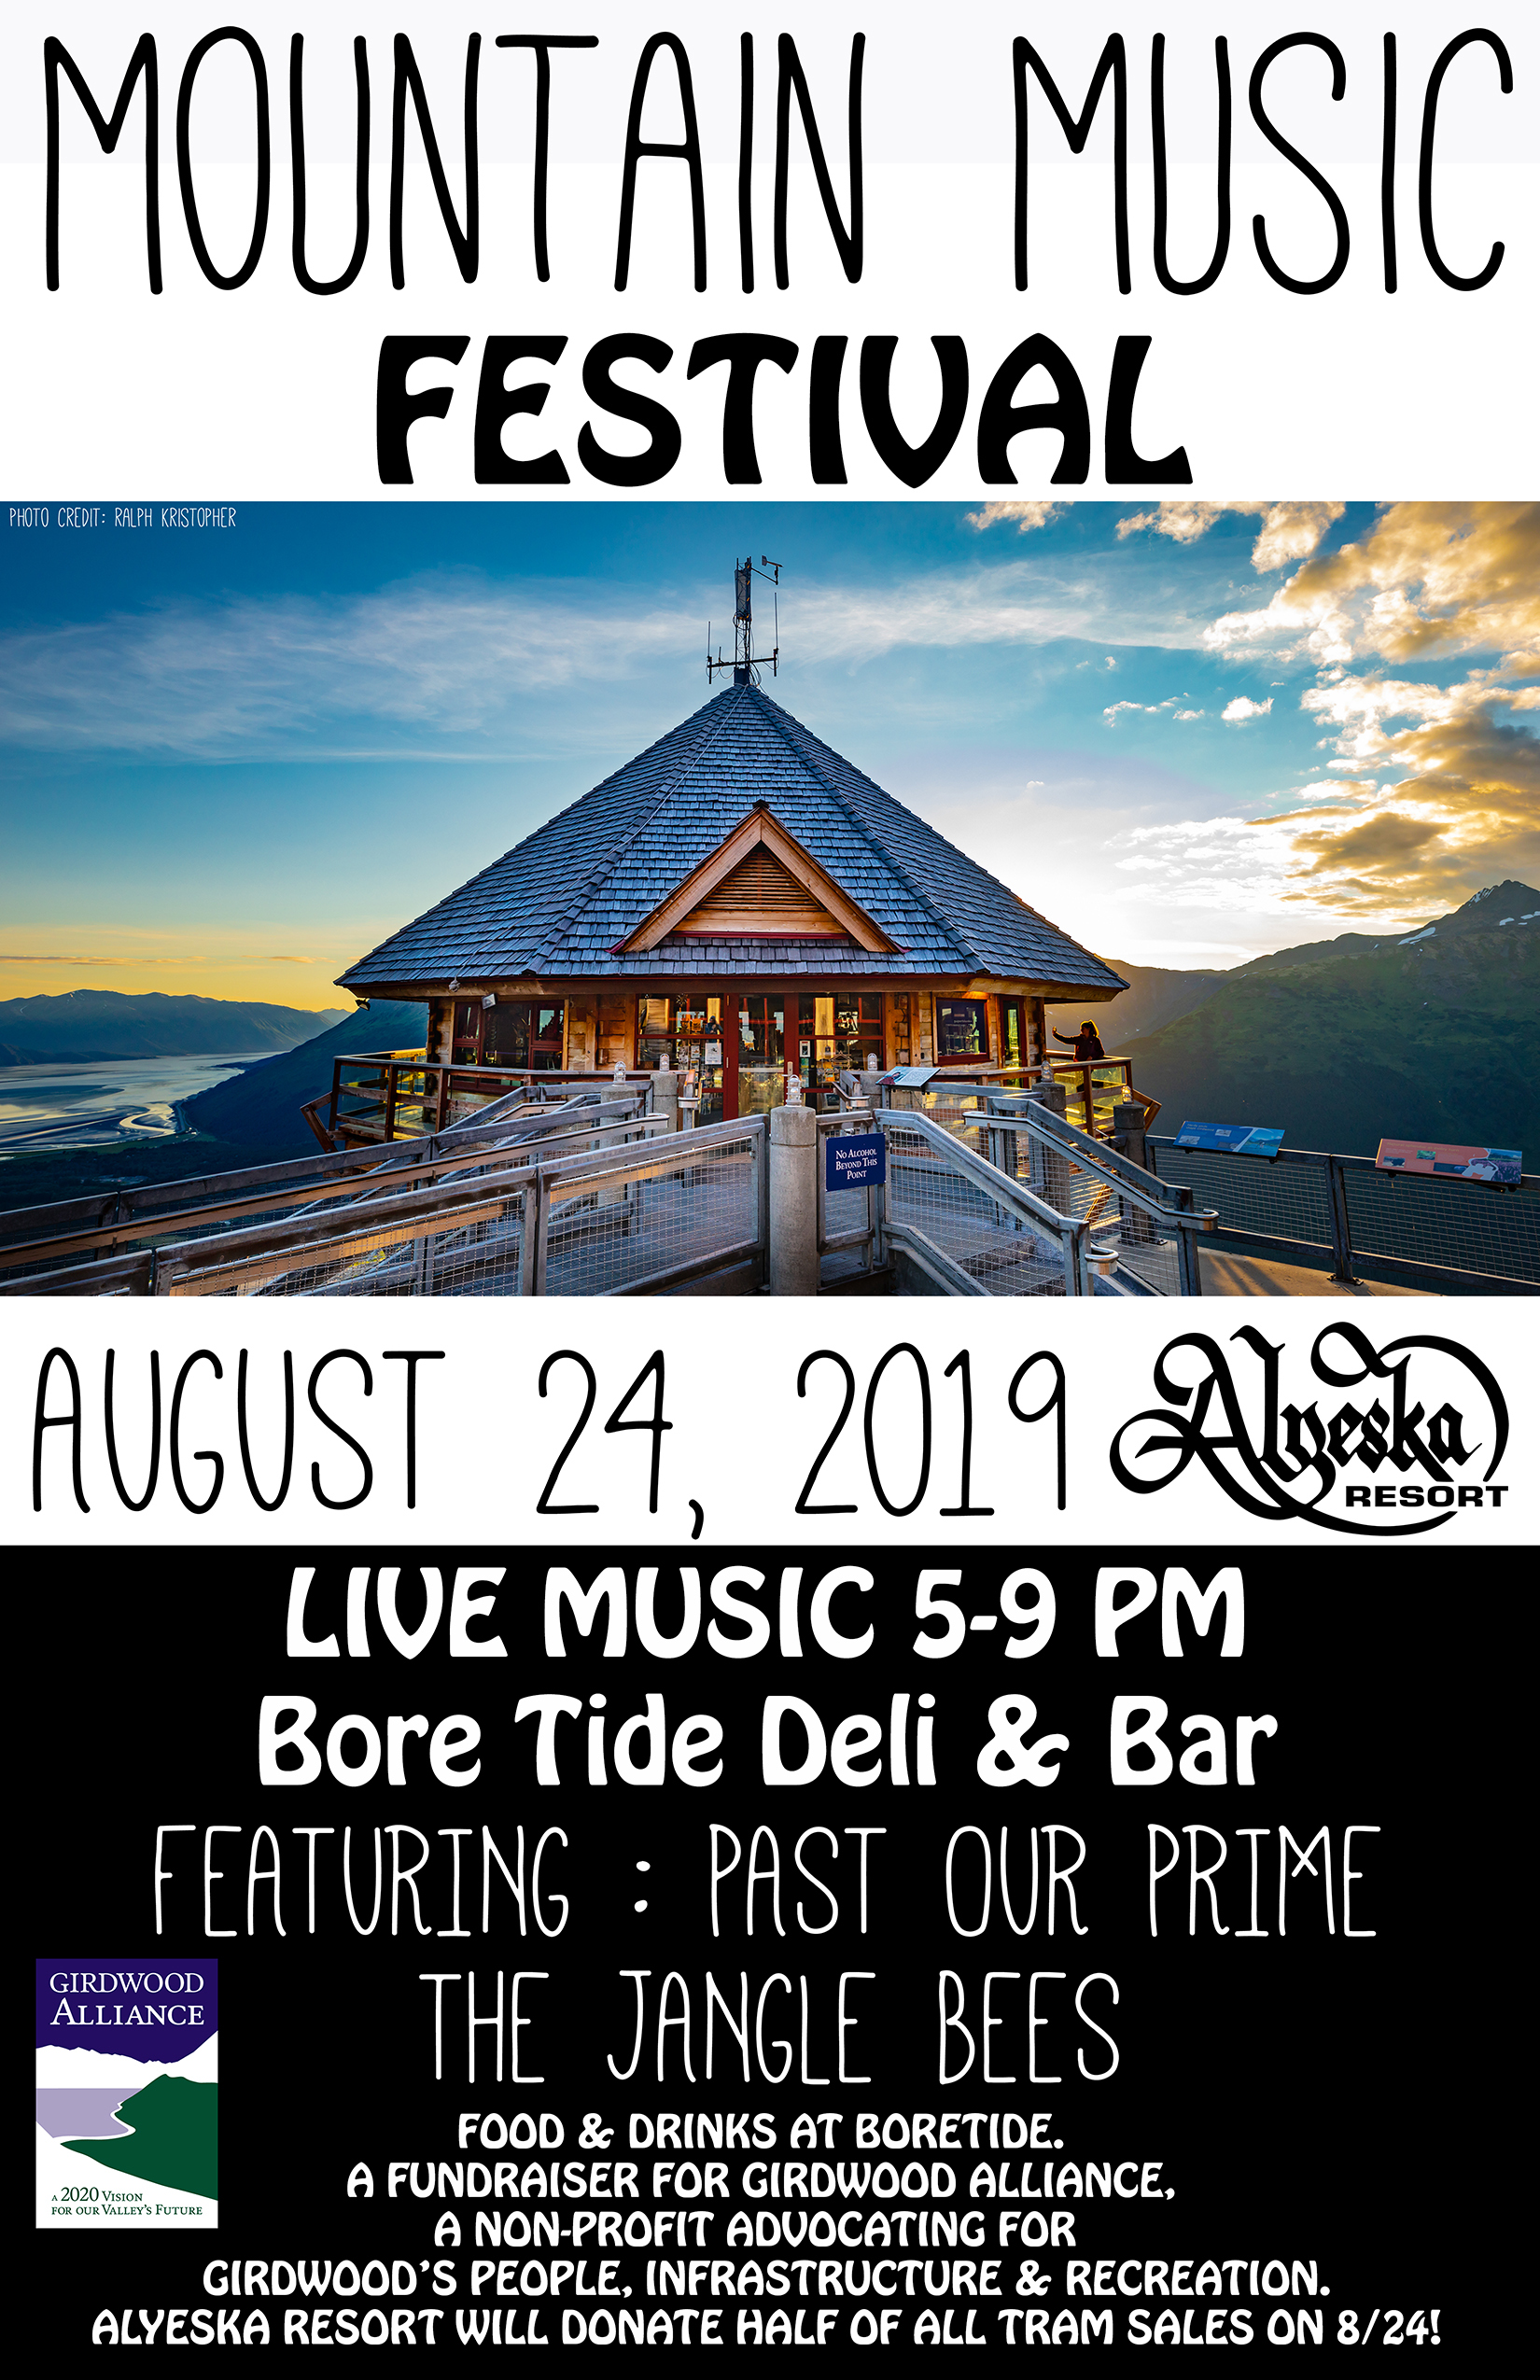 Tram Ticket - Mountain Music Festival August 24th 5-9 PM